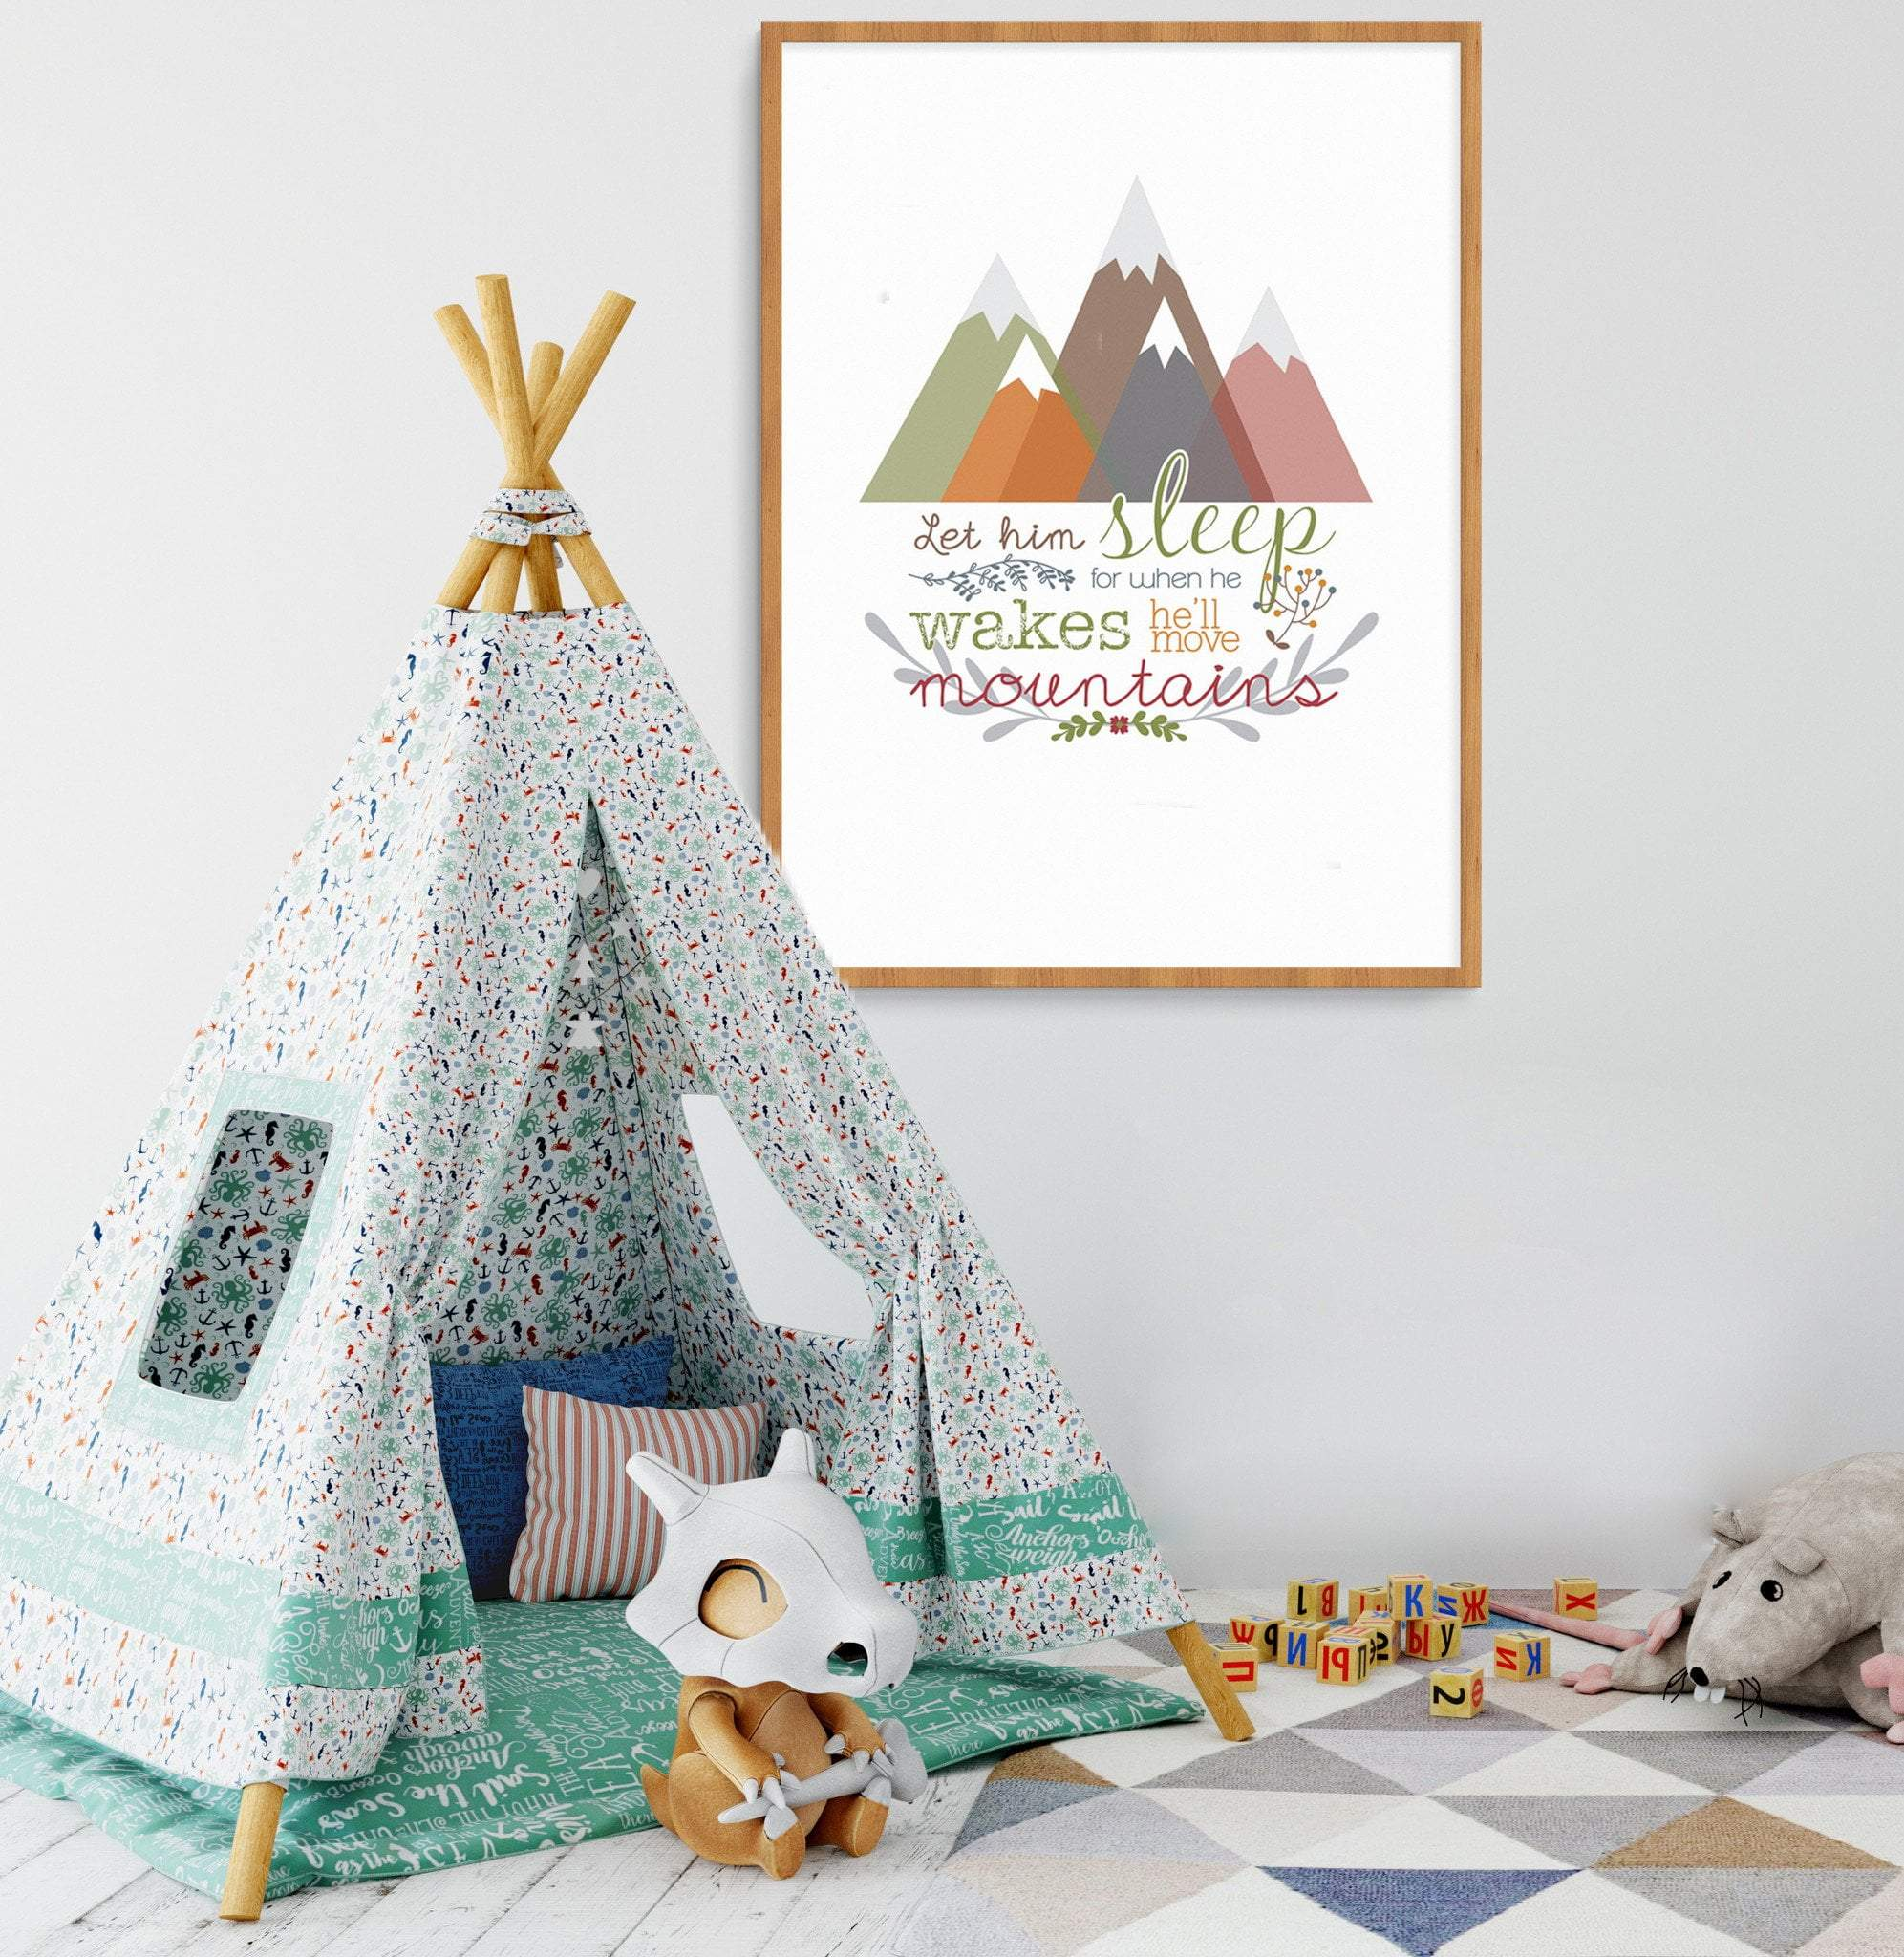 Llama Creations Boy Prints Move Mountains Boys nursery art kids wall art